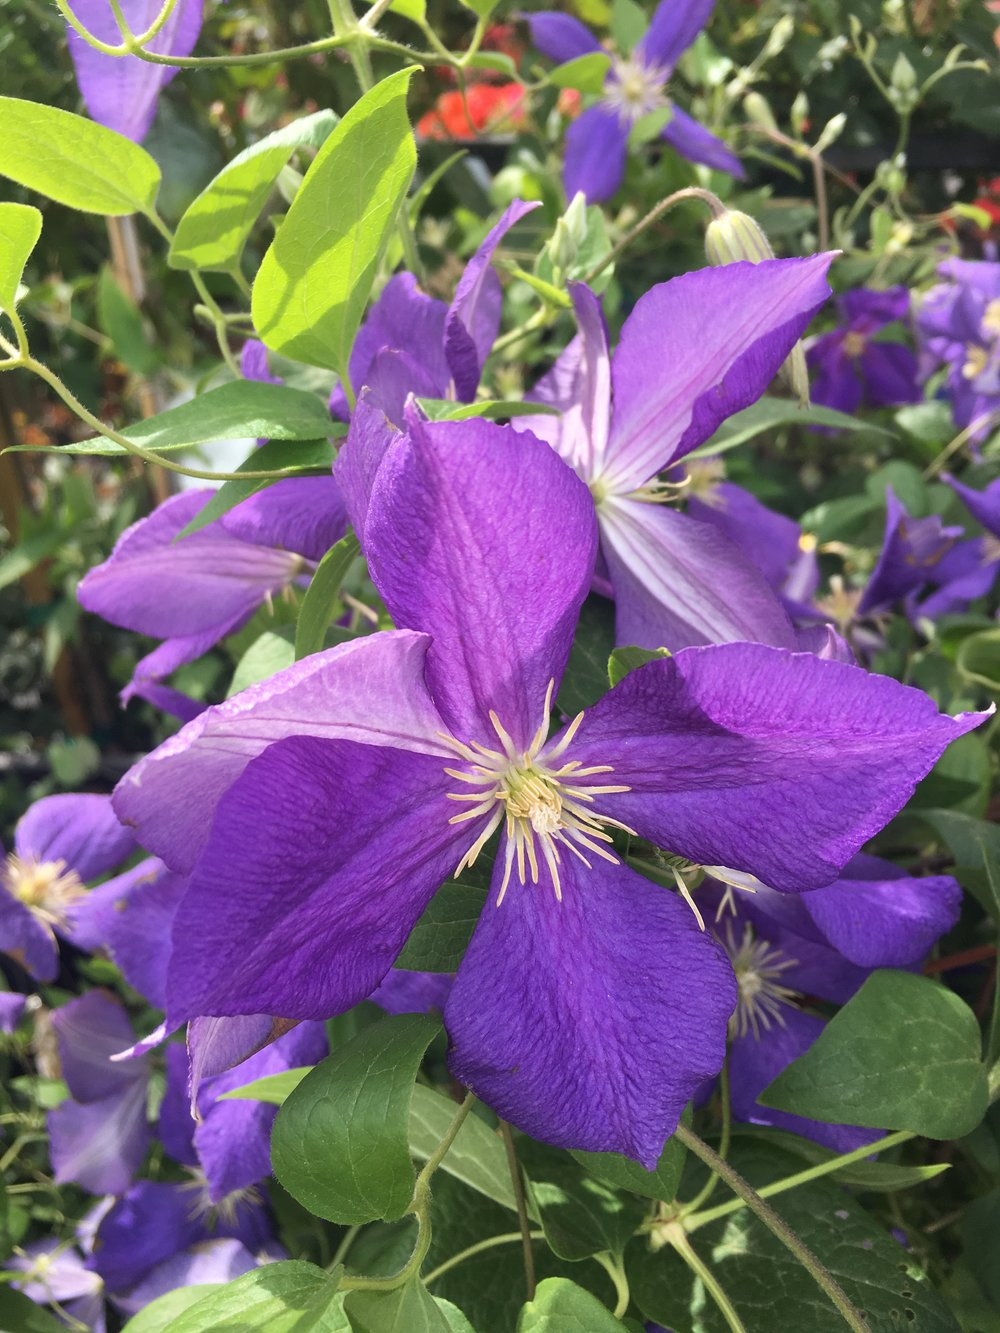 clematis are a fun summer blooming climber!!!